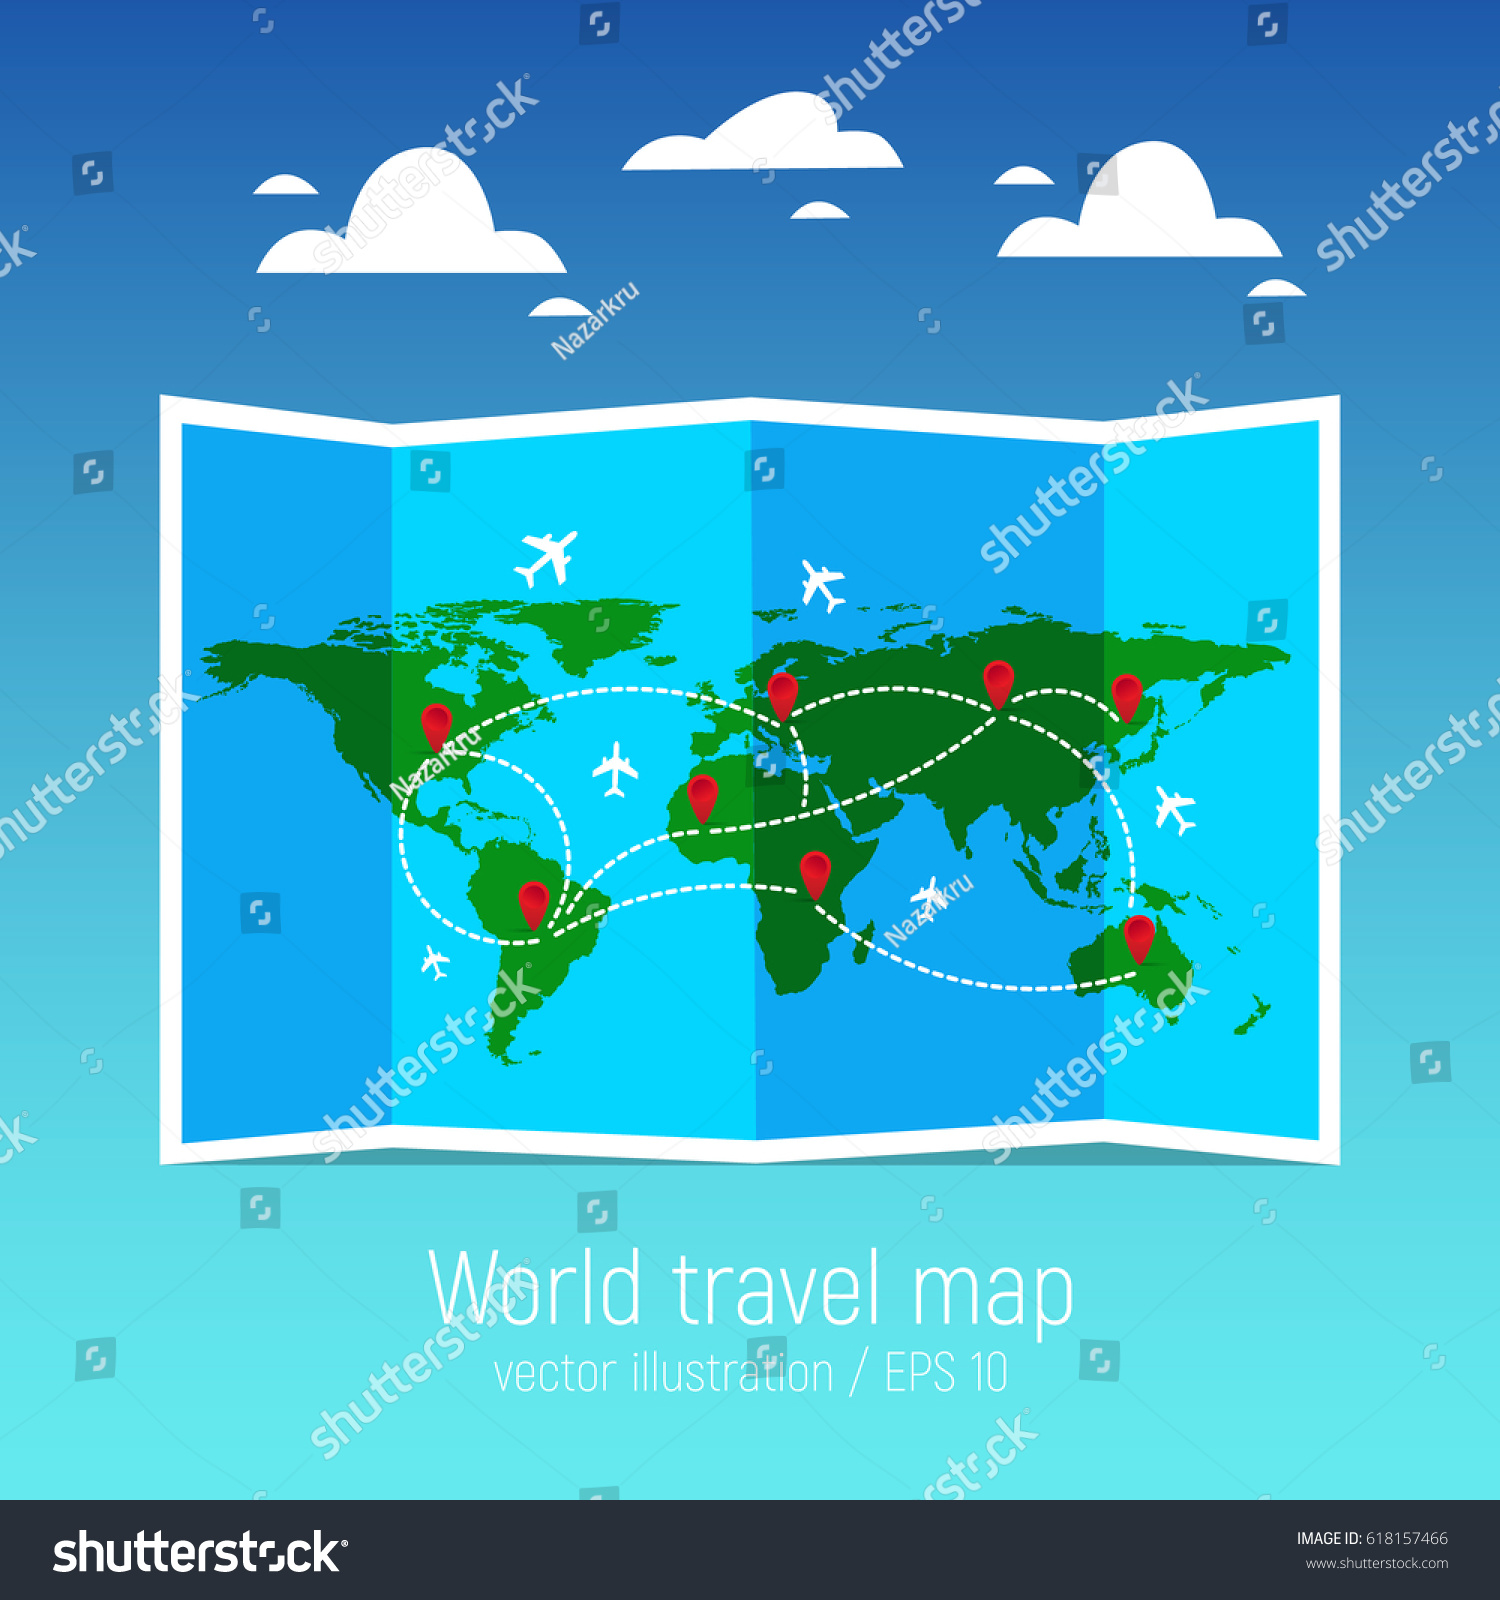 Travel tourism map folded world map stock photo photo vector travel and tourism map folded world map with airplanes and markers vector illustration gumiabroncs Image collections